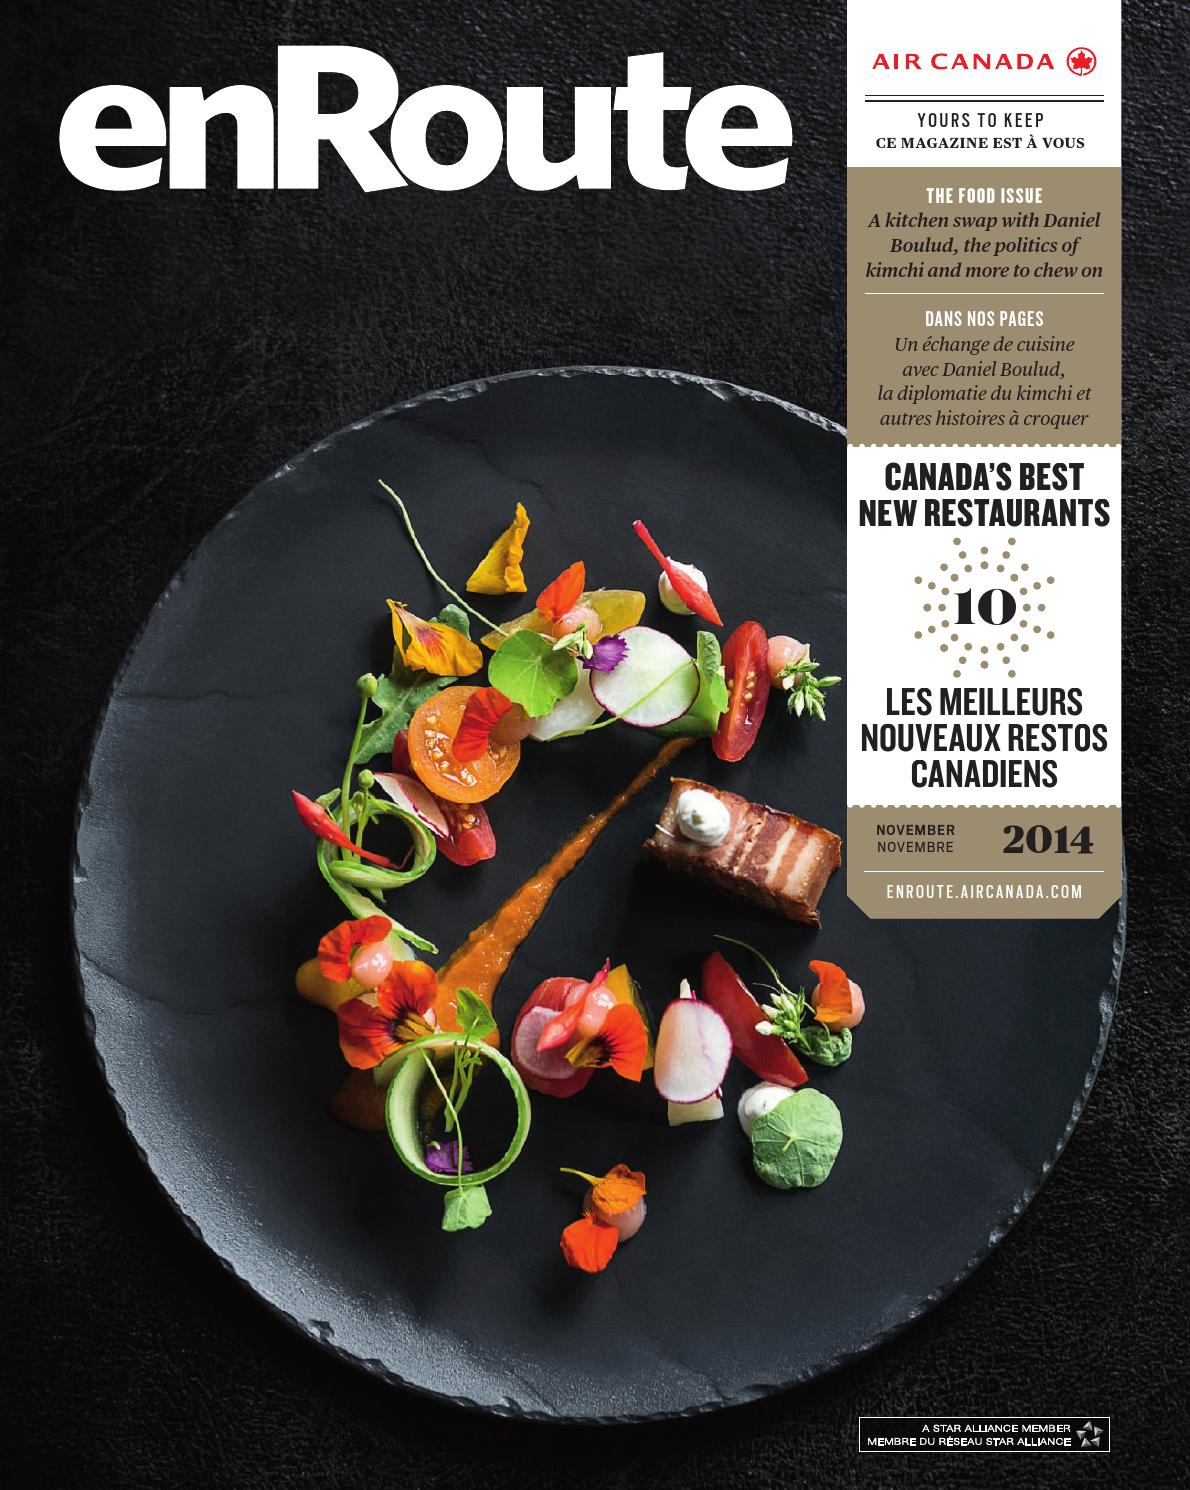 Jeux De Cuisine Avec Papa Louis Air Canada Enroute Magazine November 2014 By Spafax Issuu